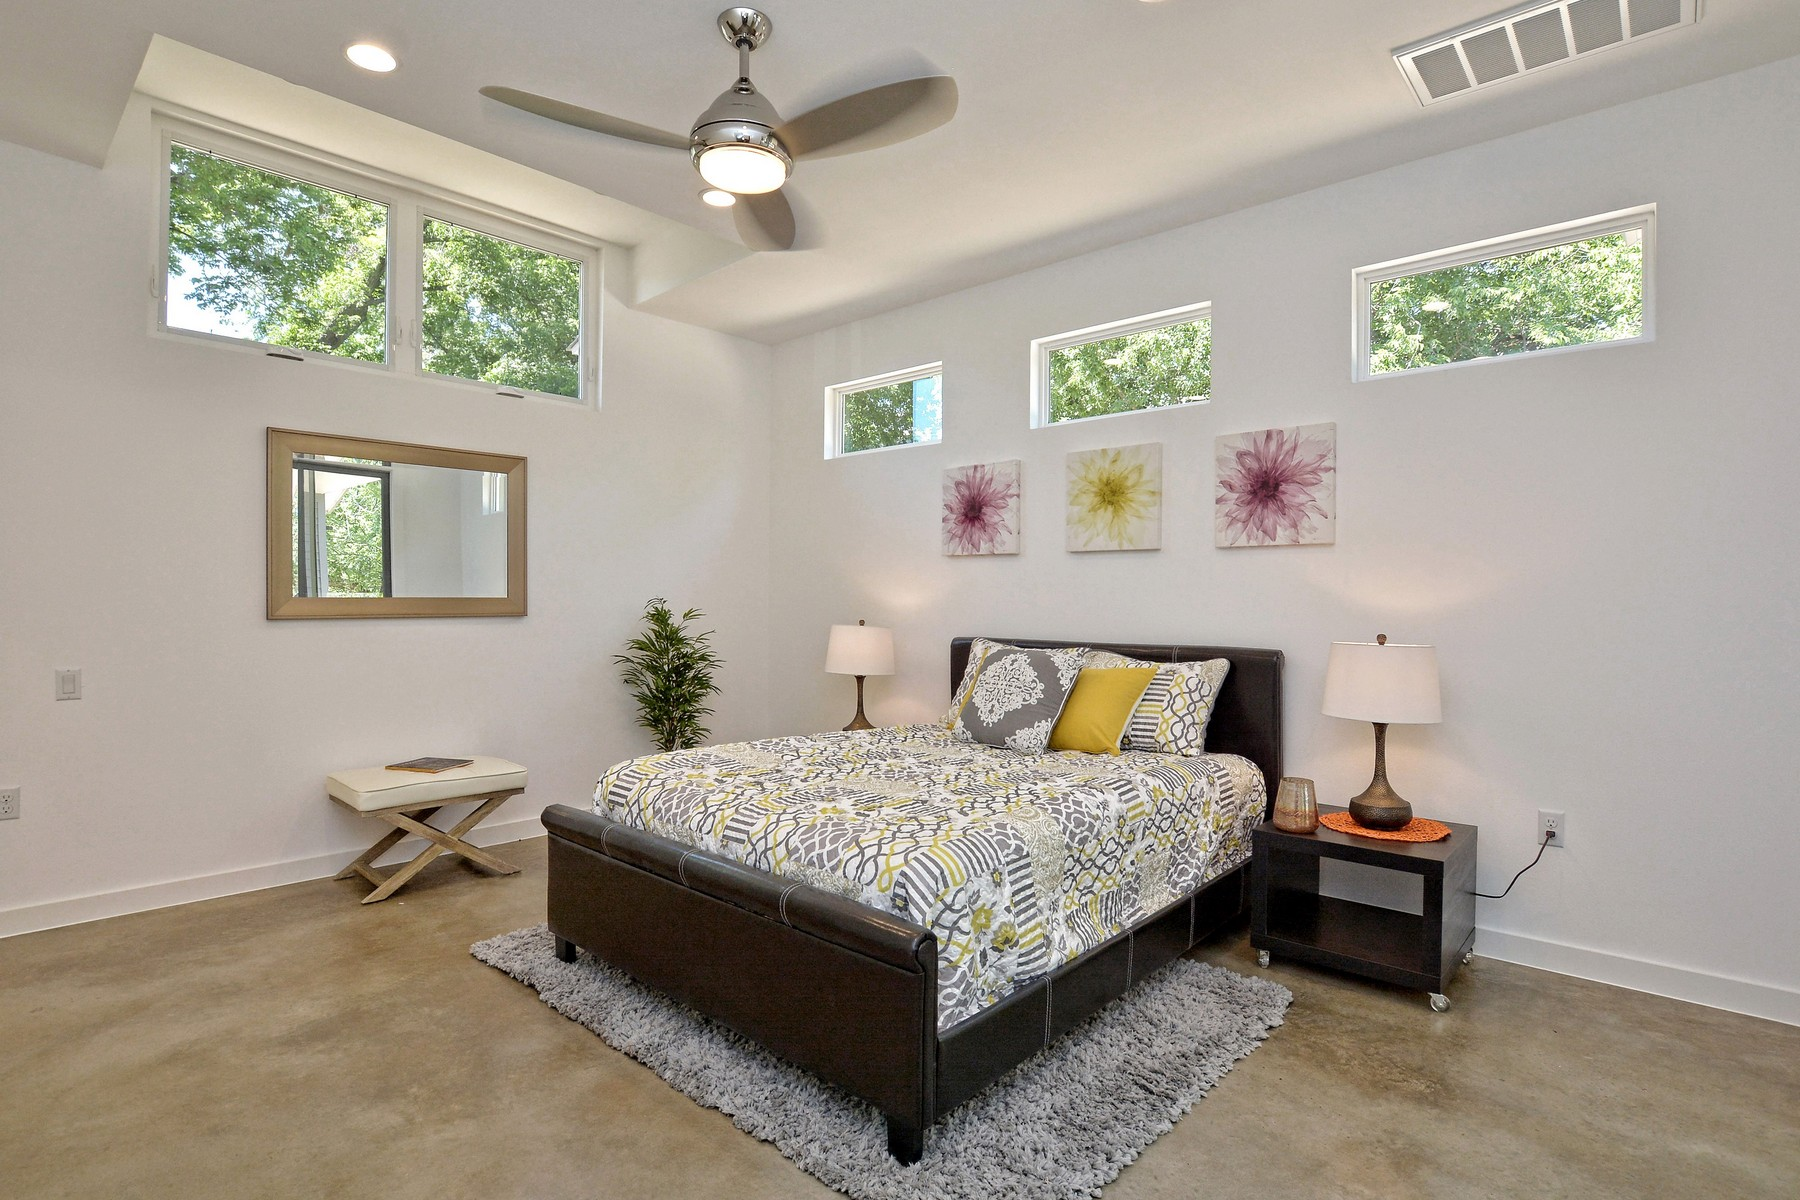 Additional photo for property listing at New Construction in the heart of Zilker 1806 Frazier Ave Austin, Texas 78704 United States